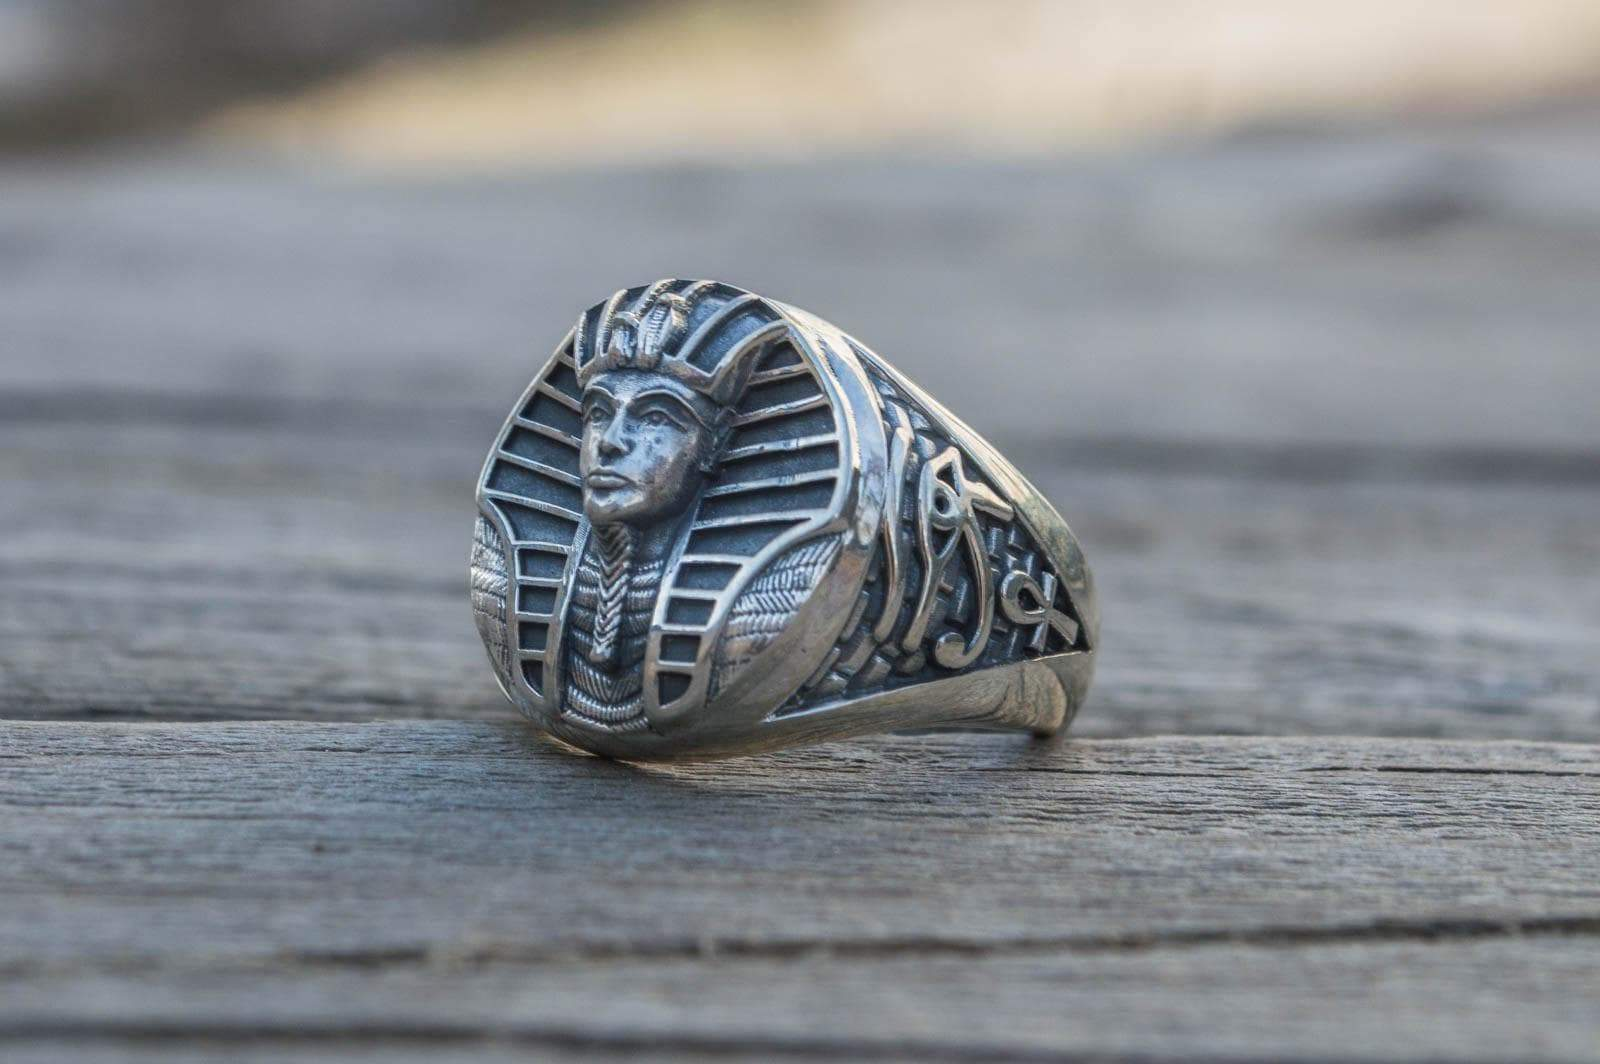 Rings Ancient Egypt Tutankhamun Sterling Silver Handmade Ring Ancient Treasures Ancientreasures Viking Odin Thor Mjolnir Celtic Ancient Egypt Norse Norse Mythology